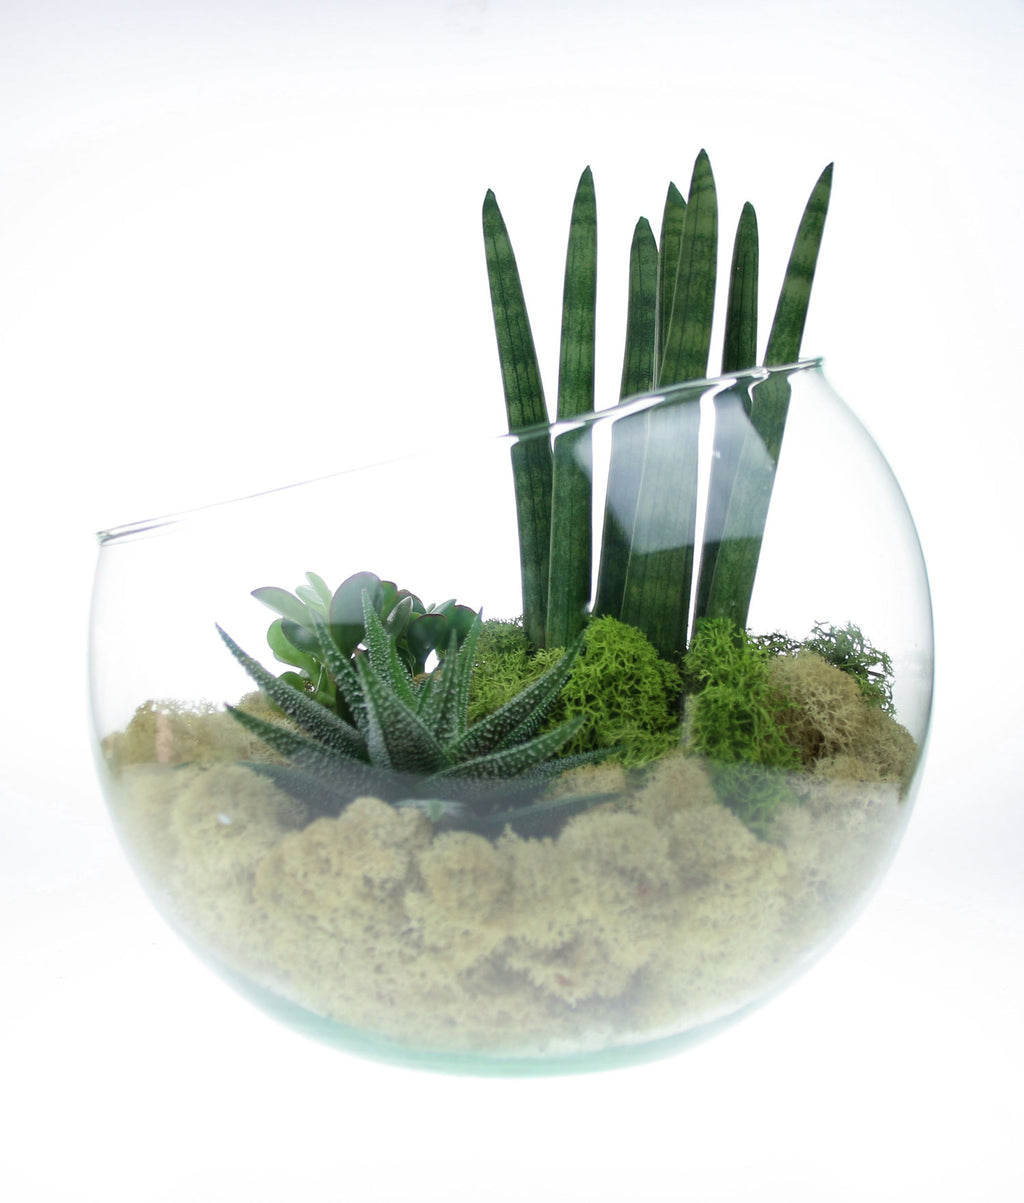 Terrarium kits with preserved moss